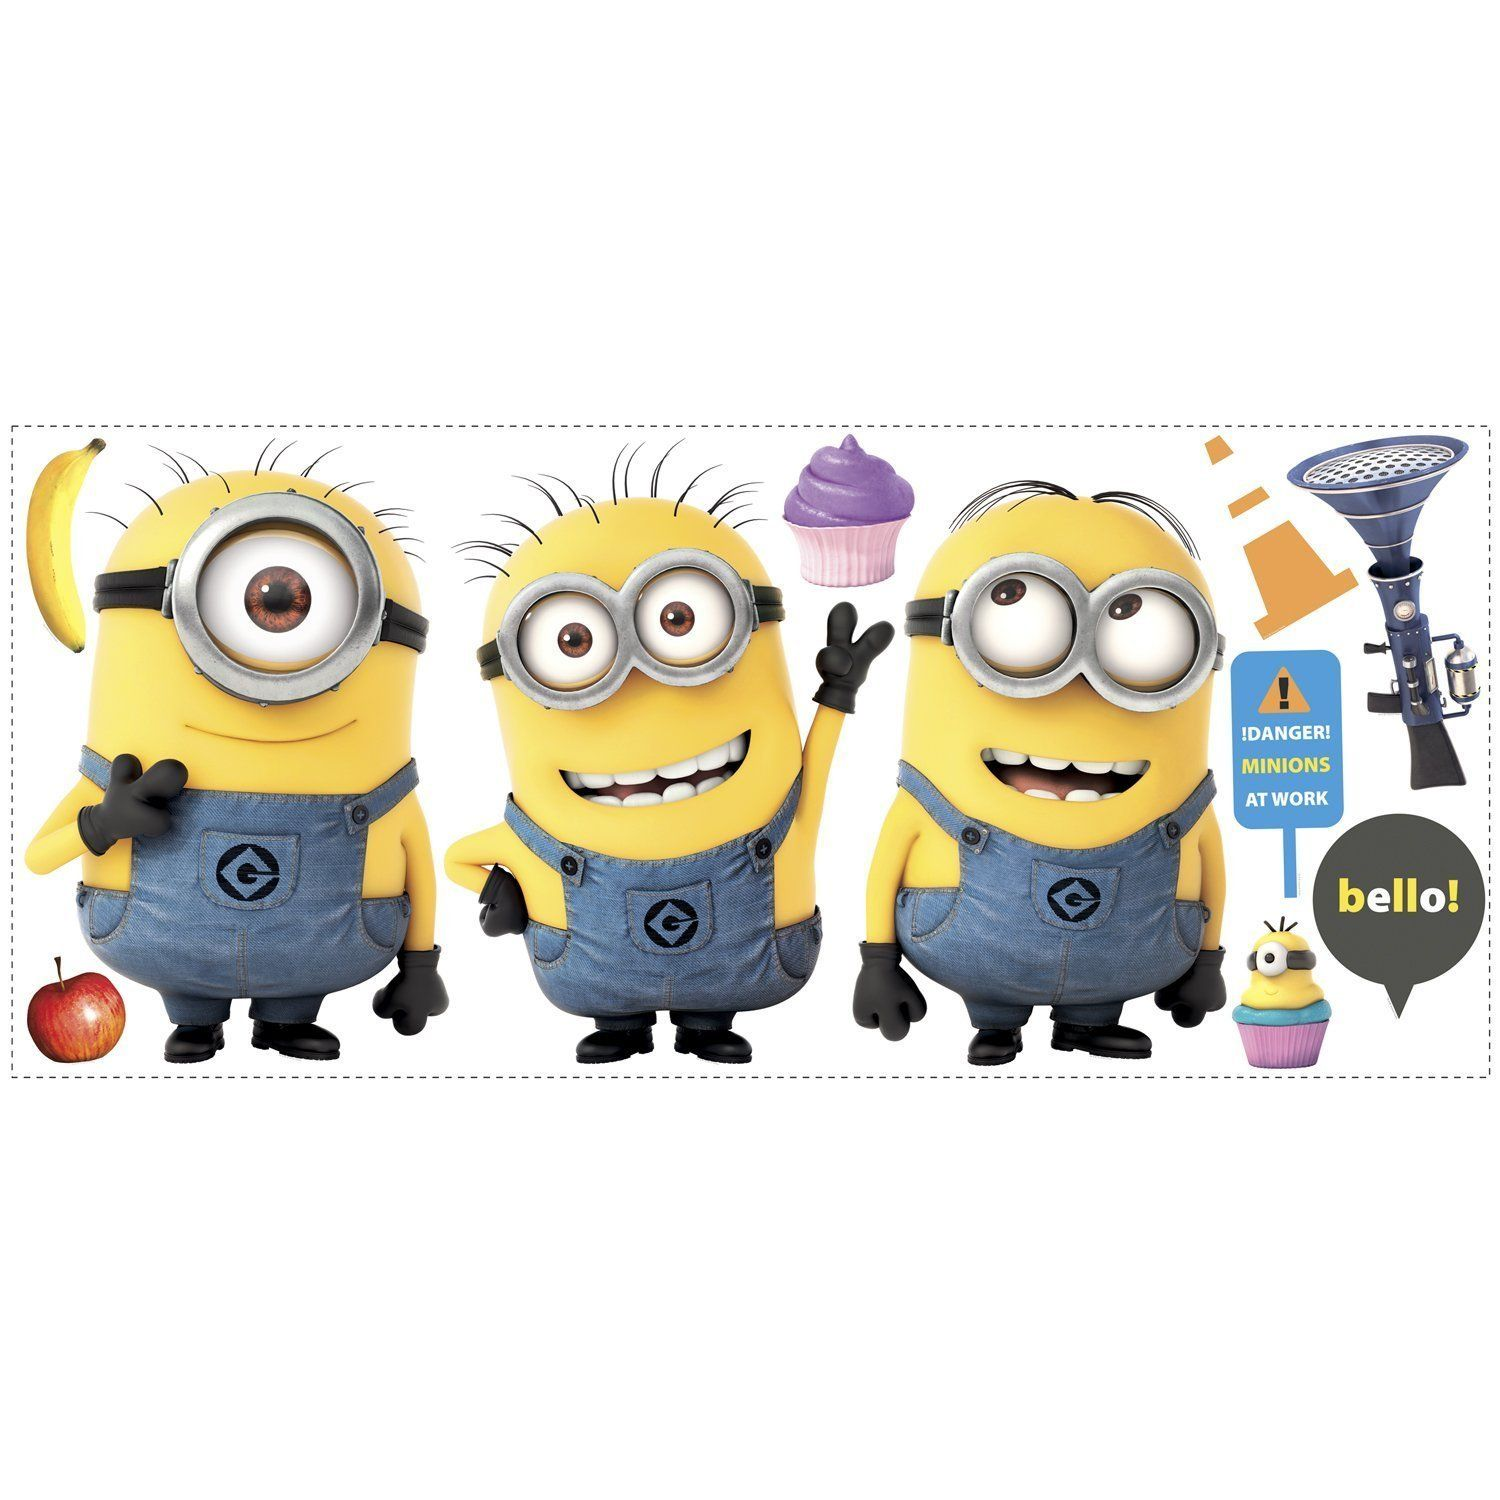 Roommates Rmk2081Gm Despicable Me 2 Minions Giant Peel And Stick ...